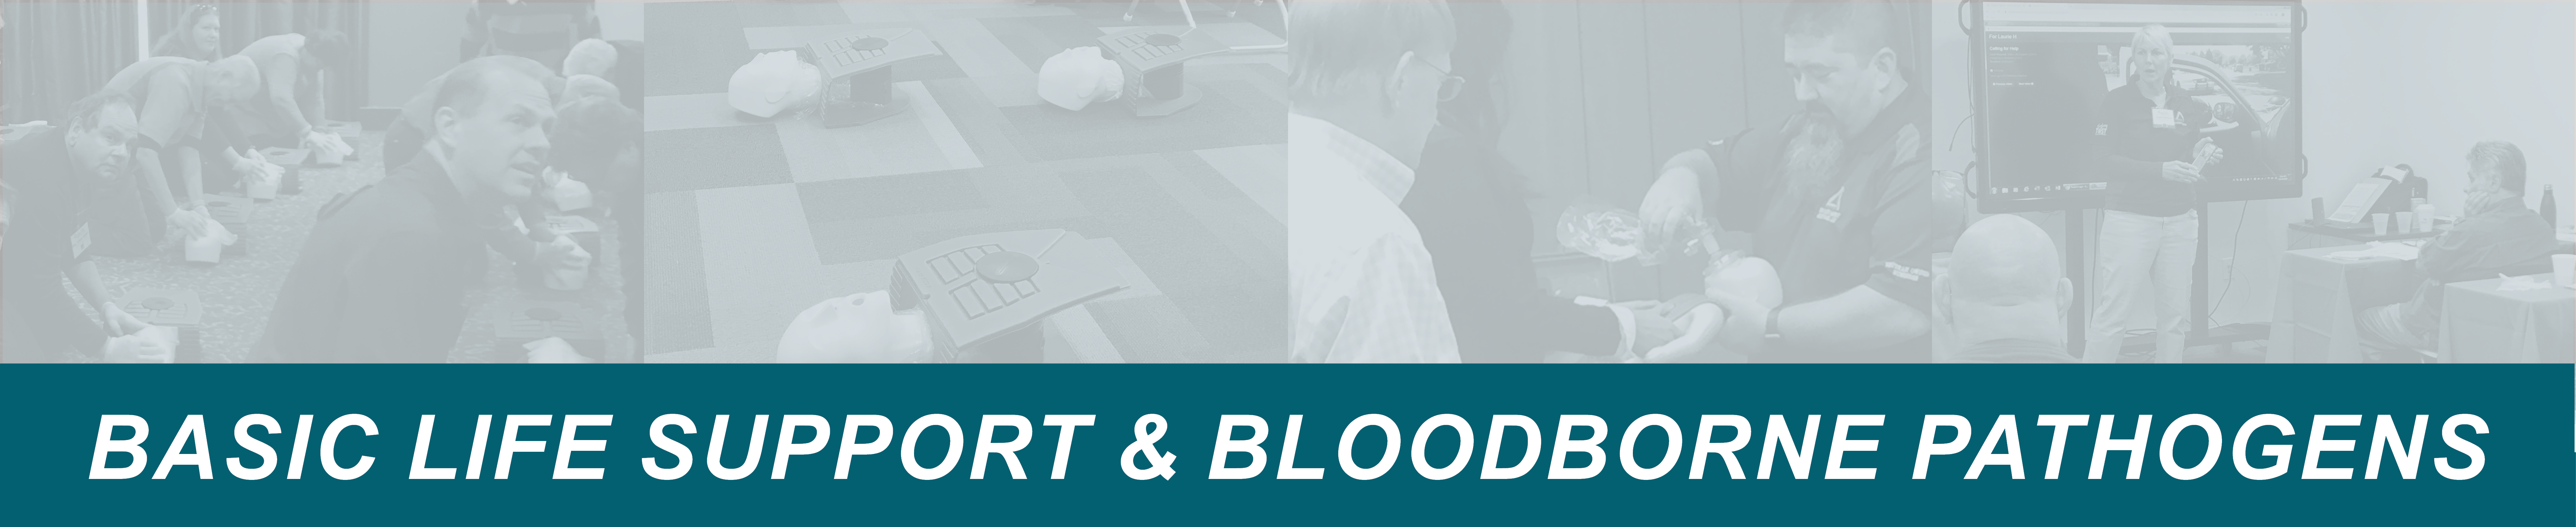 basic life support and bloodborne pathogens